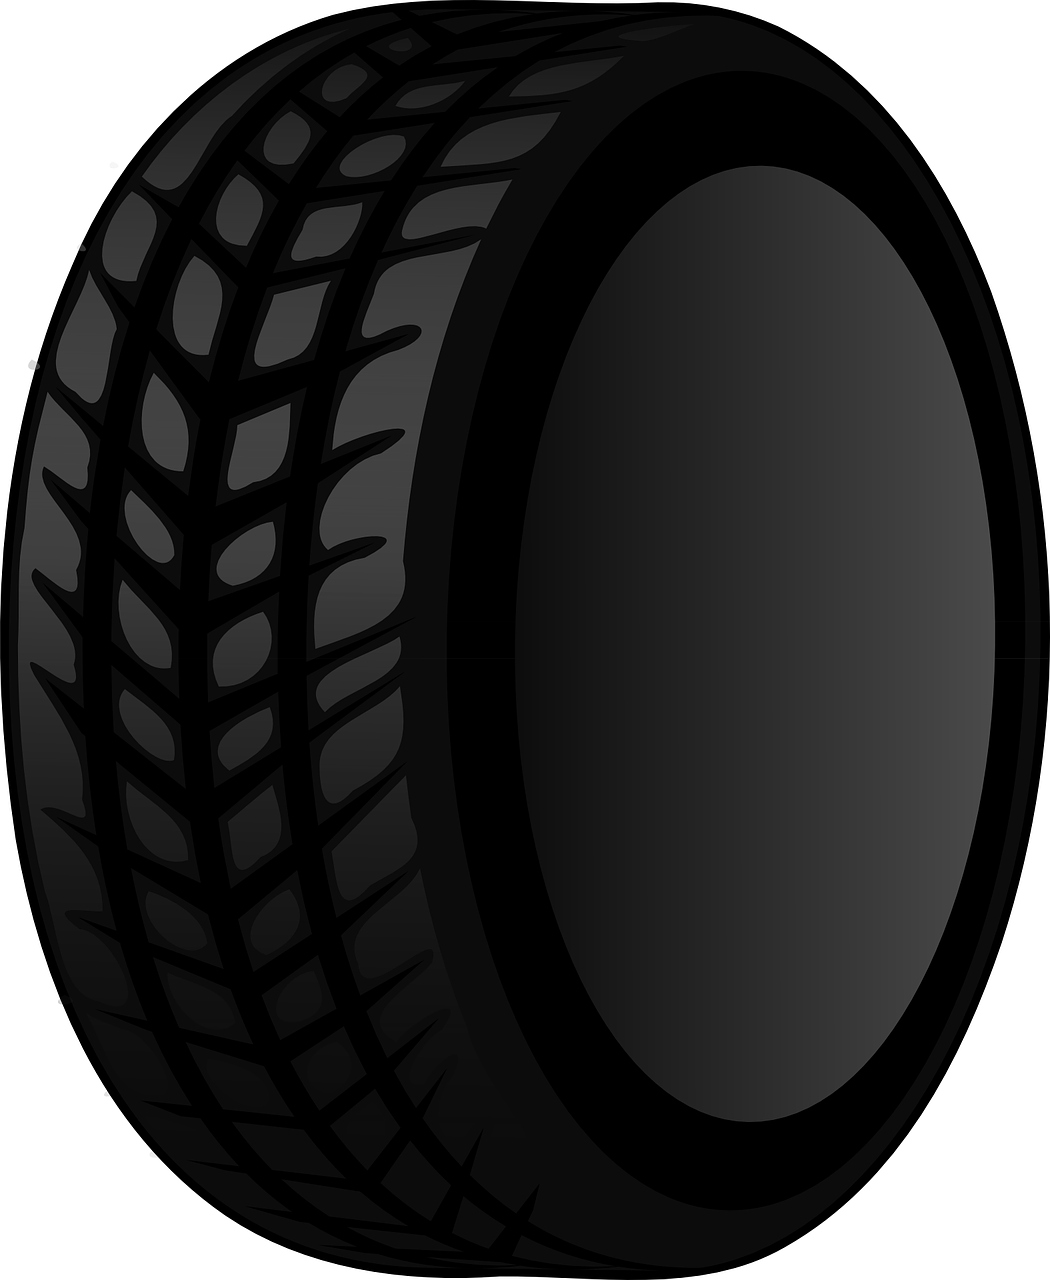 Race clipart tire smoke.  collection of images